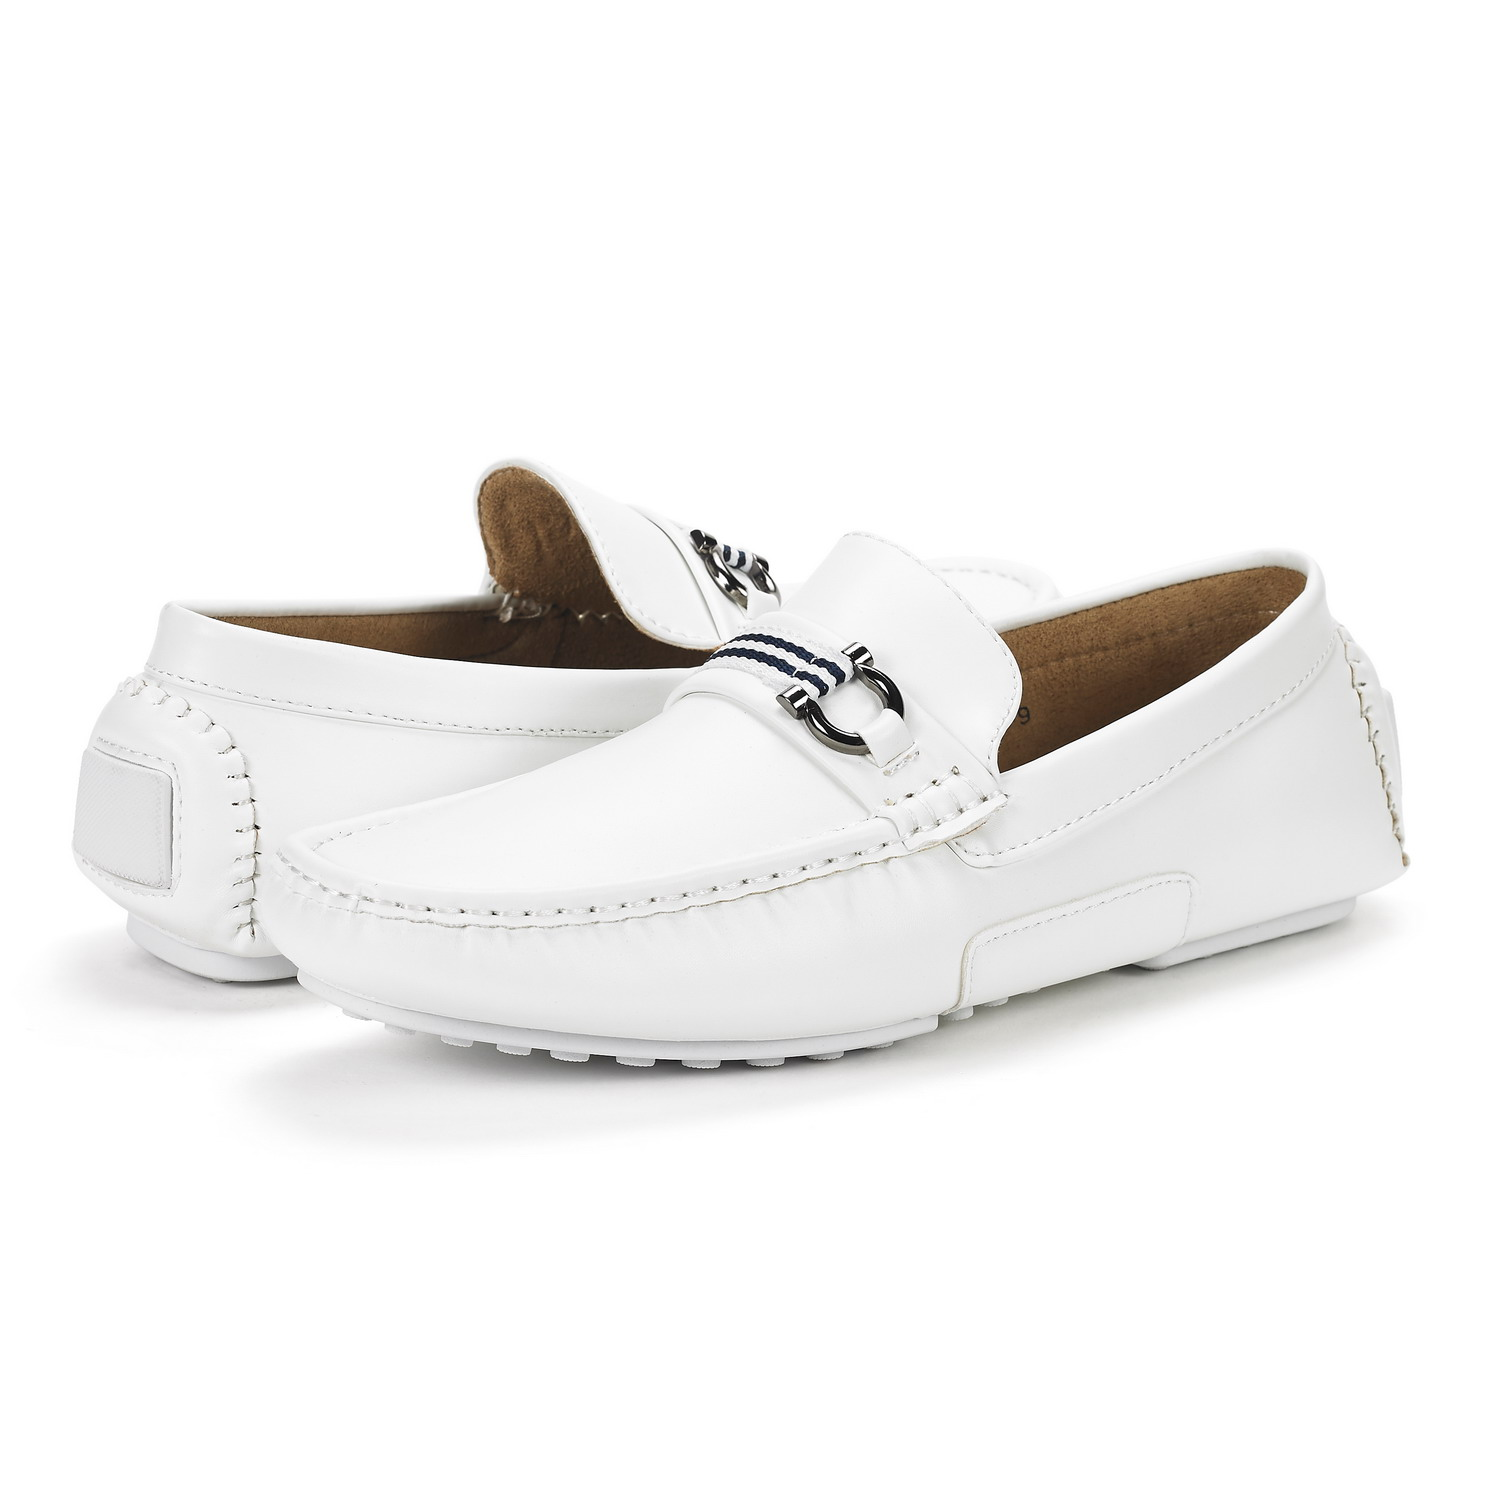 Bruno-Marc-Men-Casual-Driving-Loafers-Breathable-Antiskid-Slip-On-Moccasins-Shoe thumbnail 3